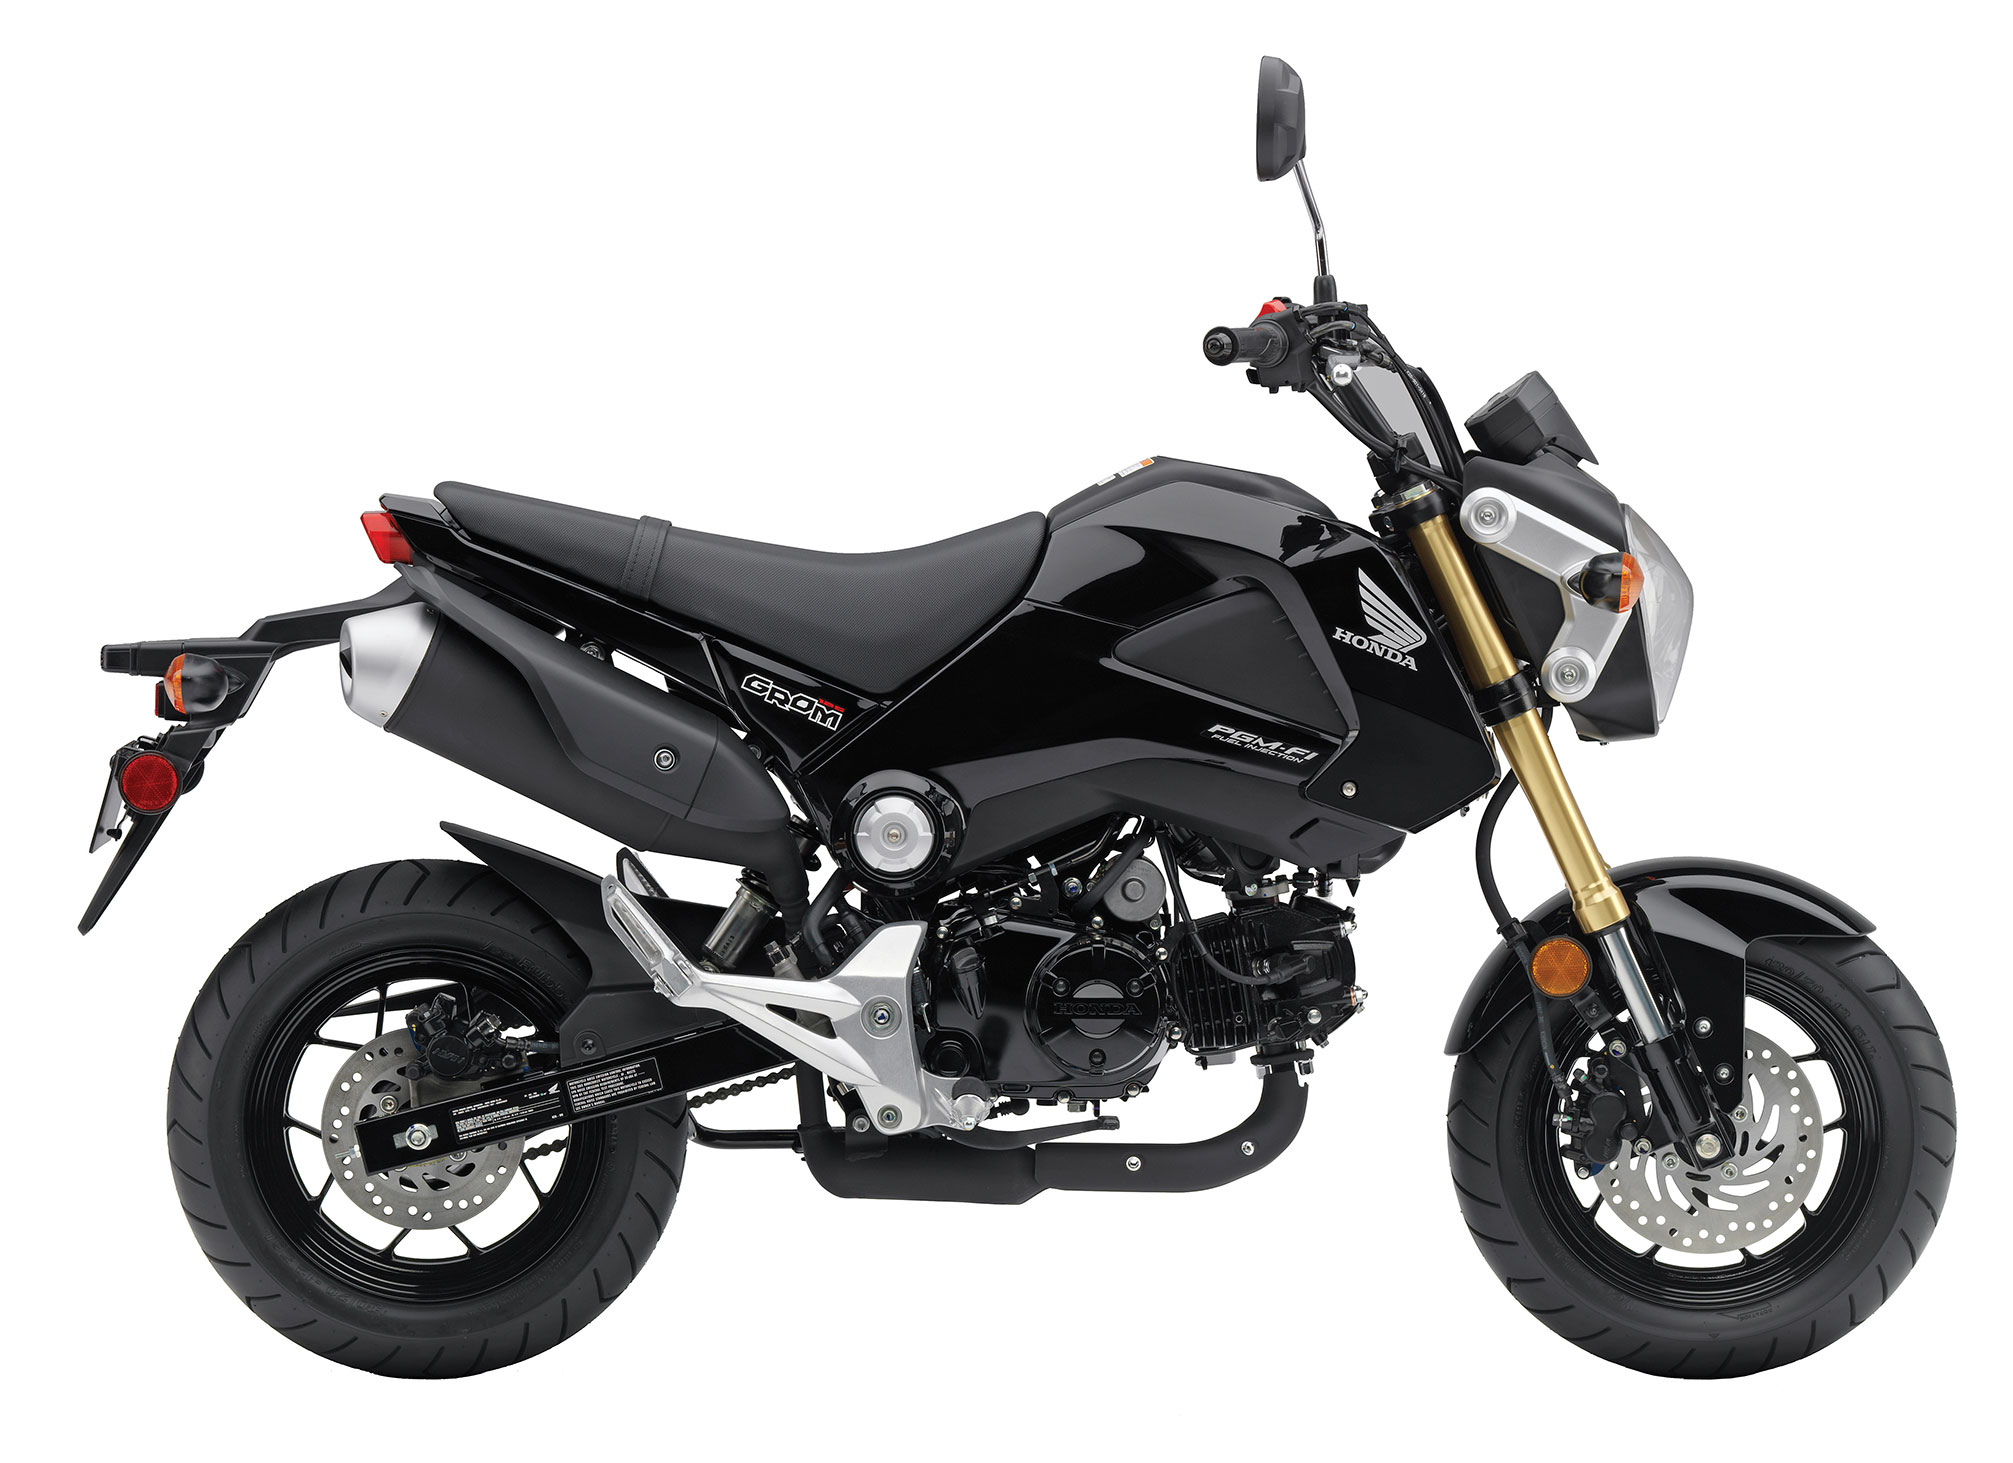 honda msx125 specs 2013 2014 autoevolution. Black Bedroom Furniture Sets. Home Design Ideas